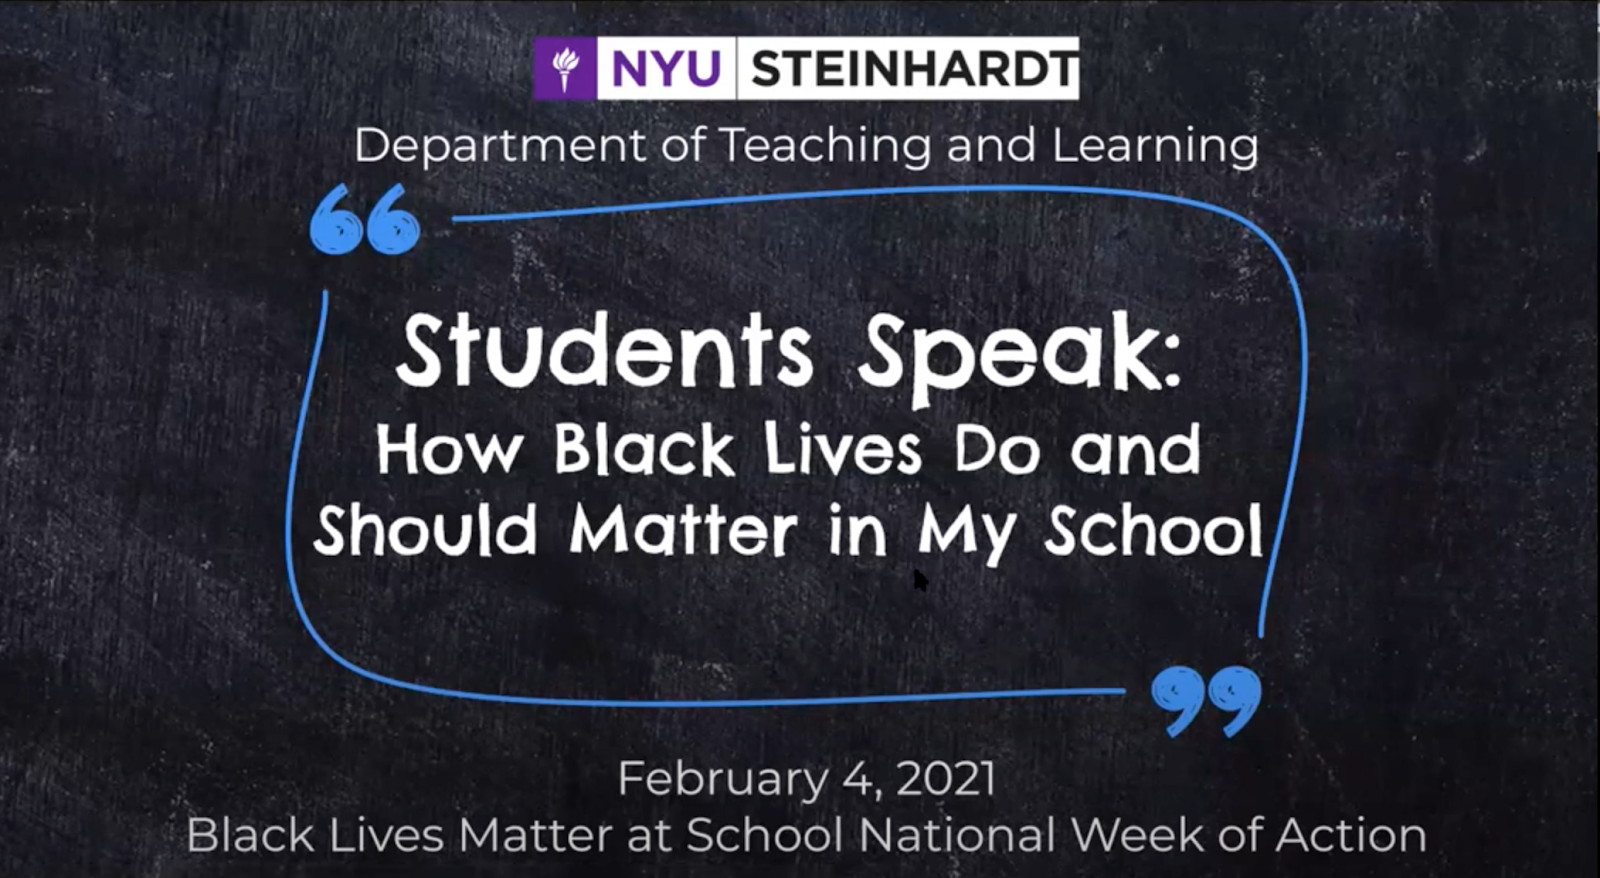 Students Speak: How Black Lives Do and Should Matter in My School virtual panel from NYU Steinhardt on February 4, 2021.